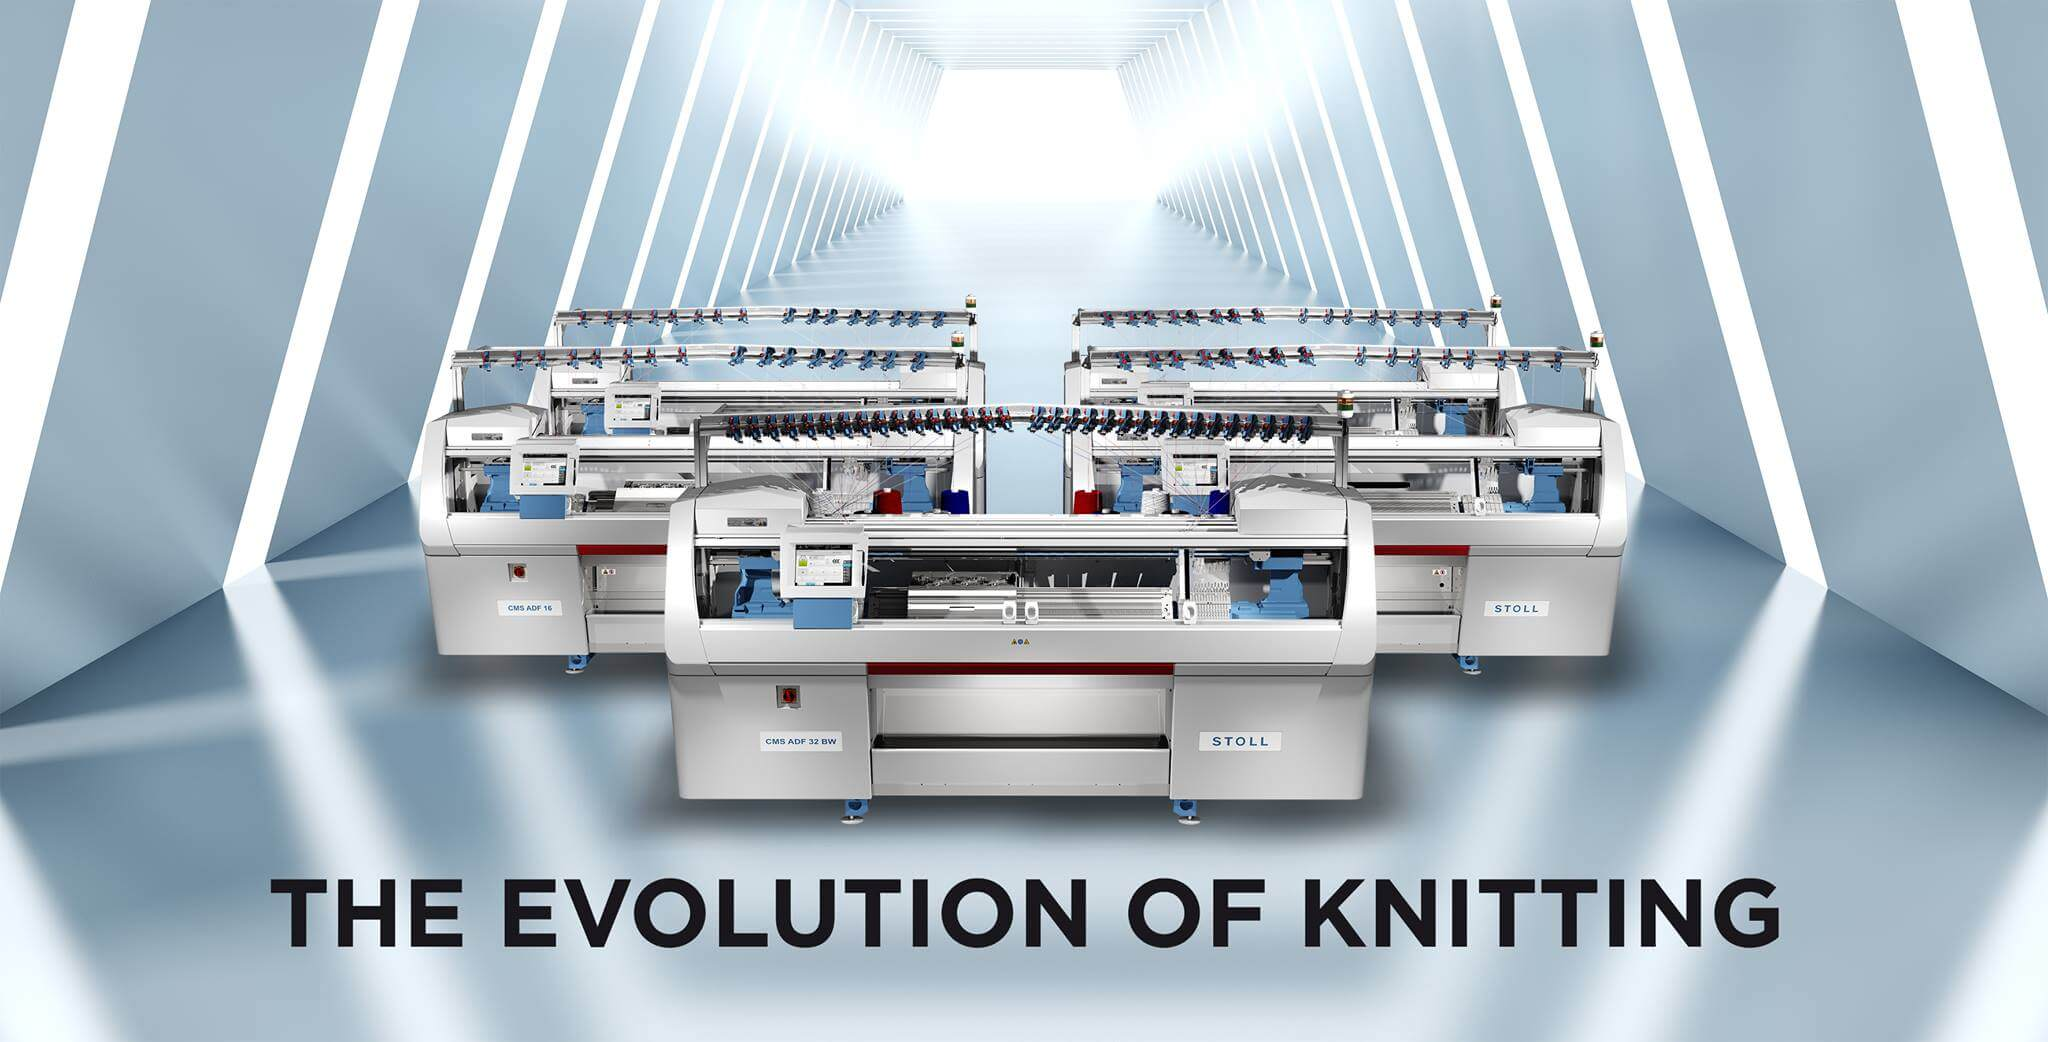 "In a press release last night the companies announced that ""advanced manufacturing will get a significant boost in Canada and the US when Stoll and Myant roll out 500 new 3D knitting machines to underpin the growth of functional computing textiles."" (c) Myant."